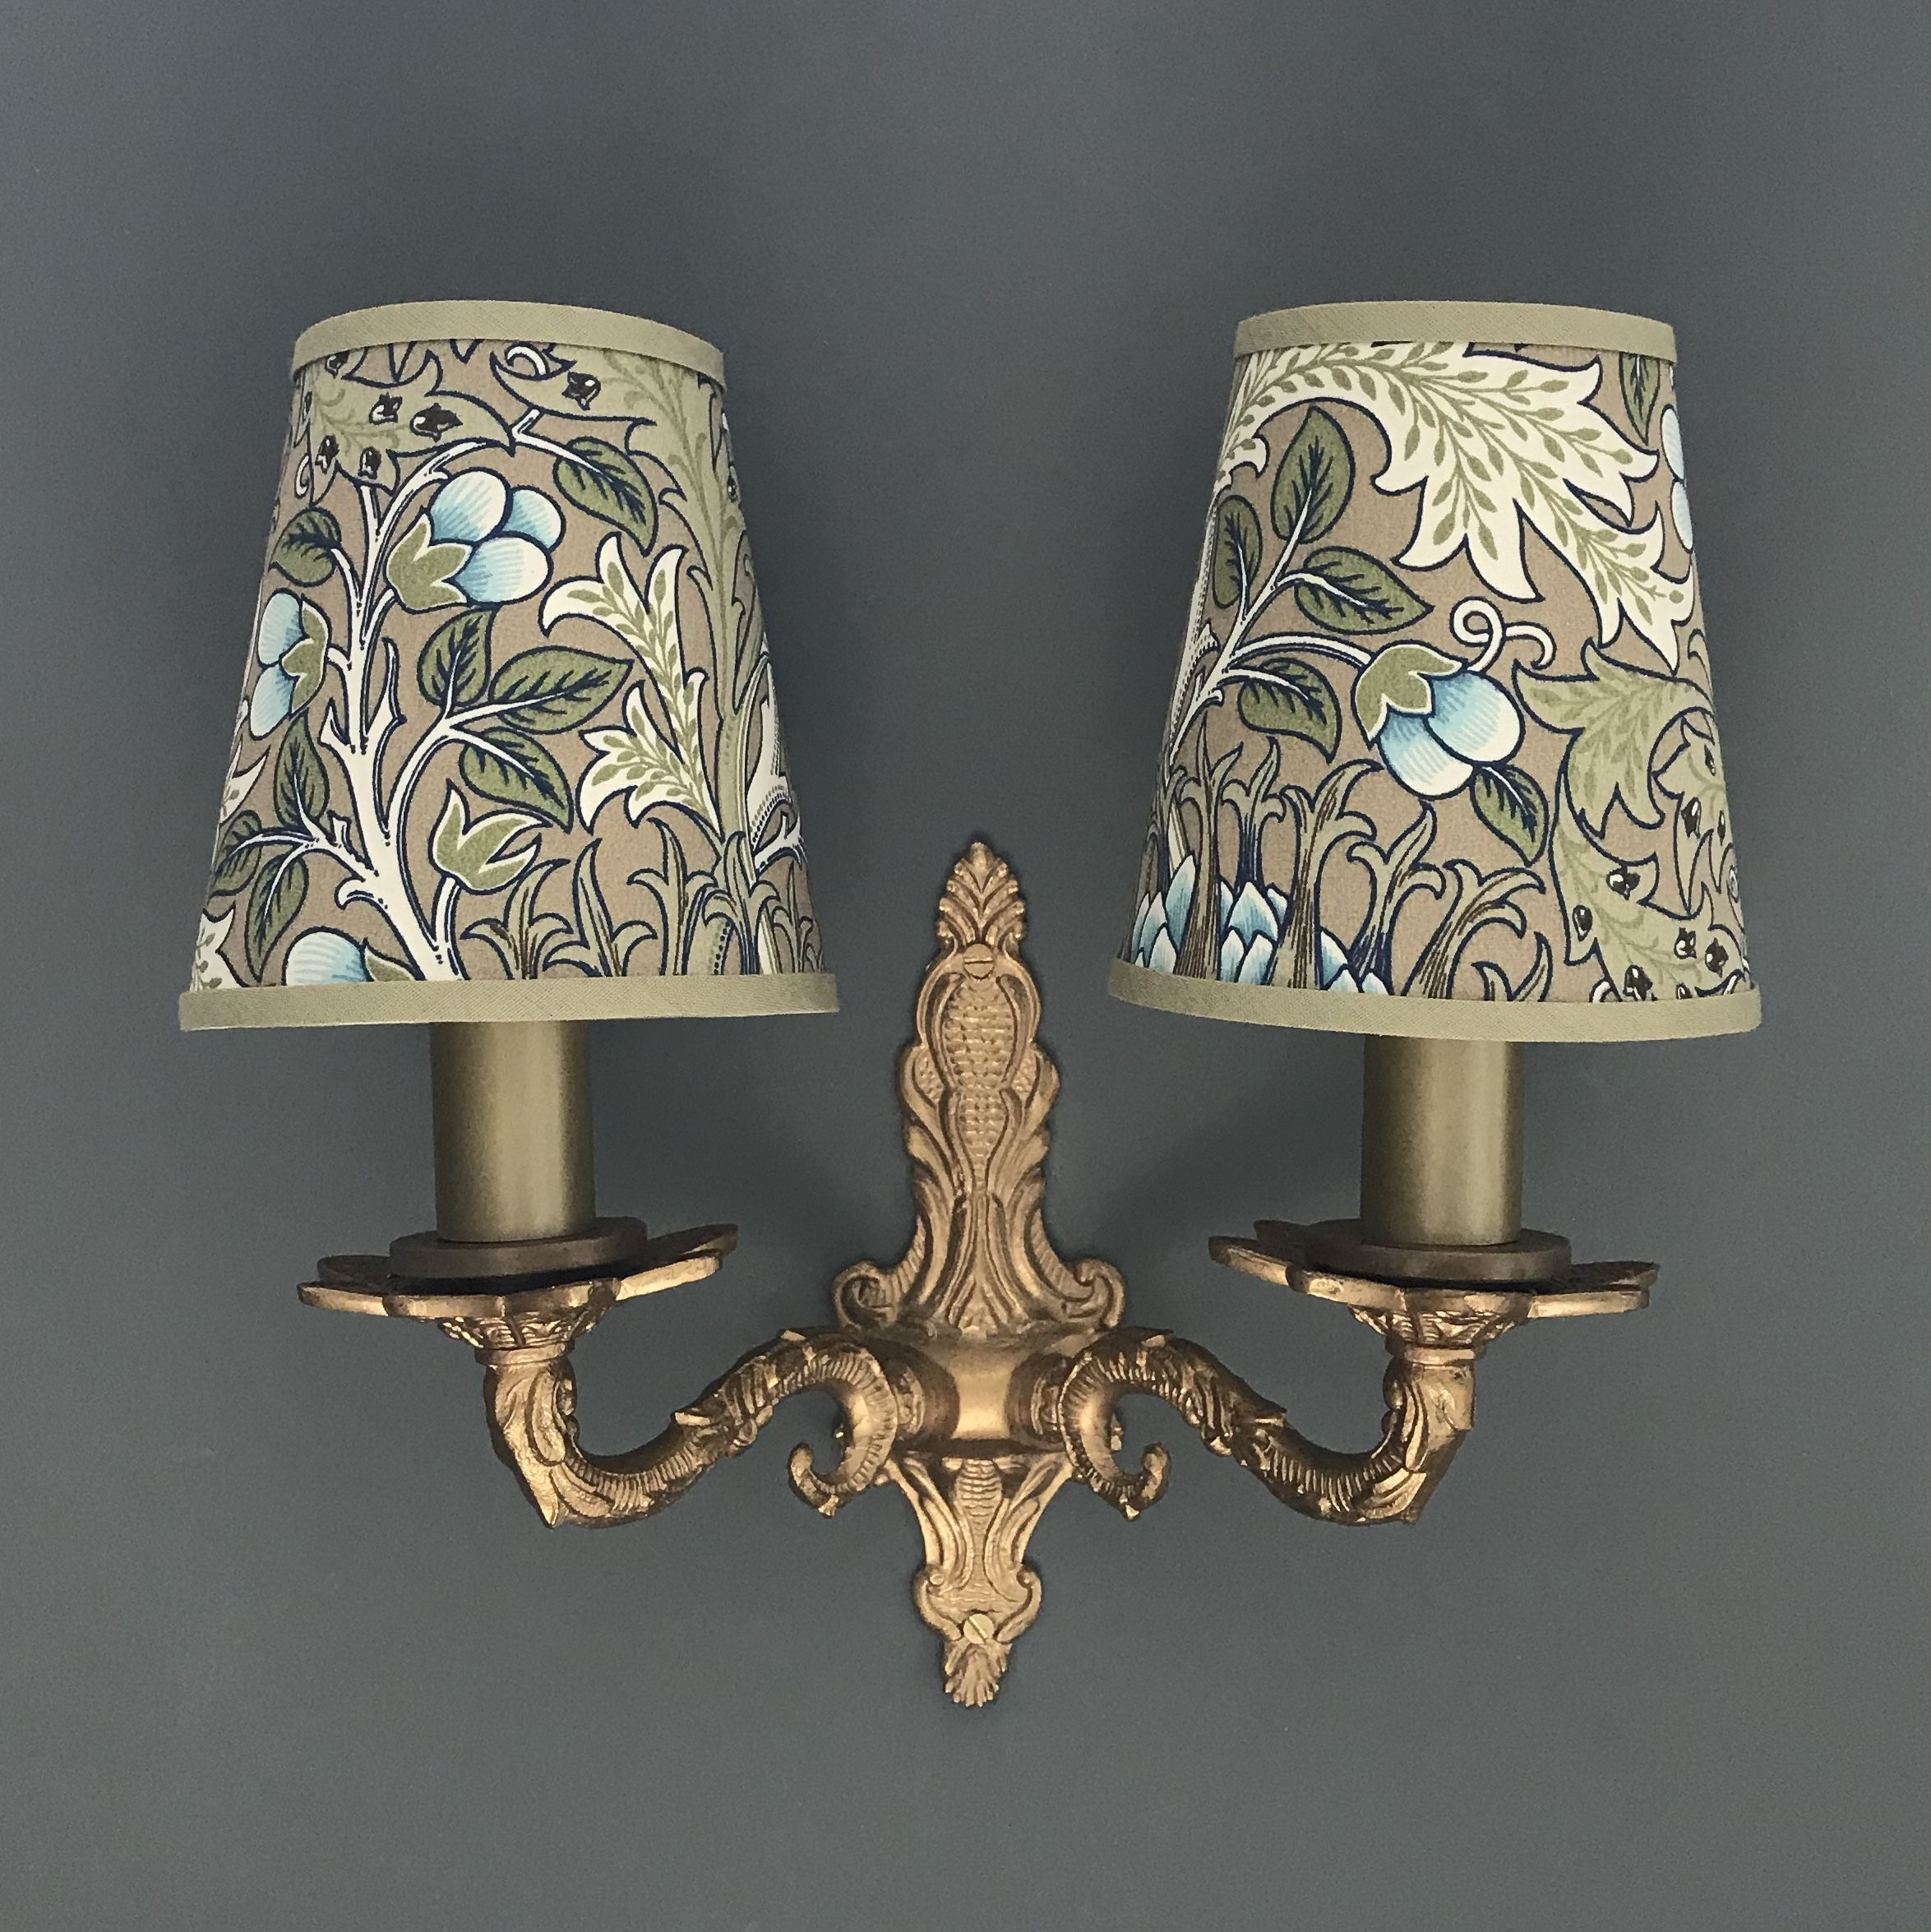 Chandelier Light Lamp Shades Candle, candles, light Fixture